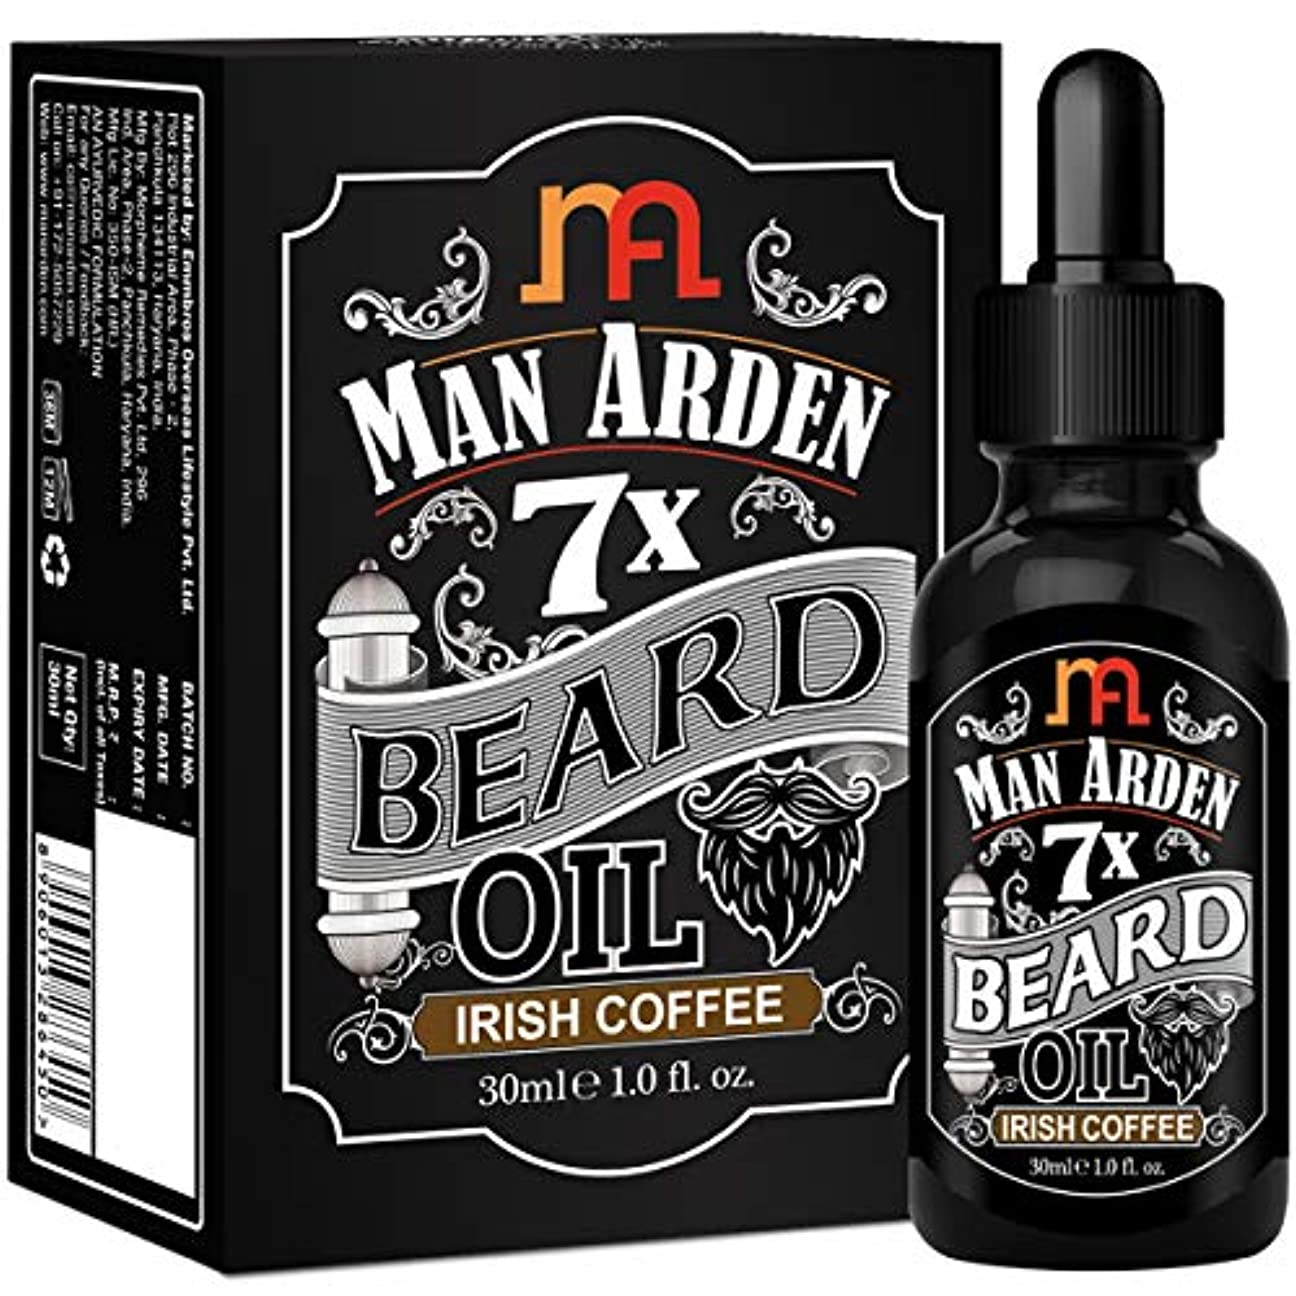 まとめる取り壊すトピックMan Arden 7X Beard Oil 30ml (Irish Coffee) - 7 Premium Oils For Beard Growth & Nourishment